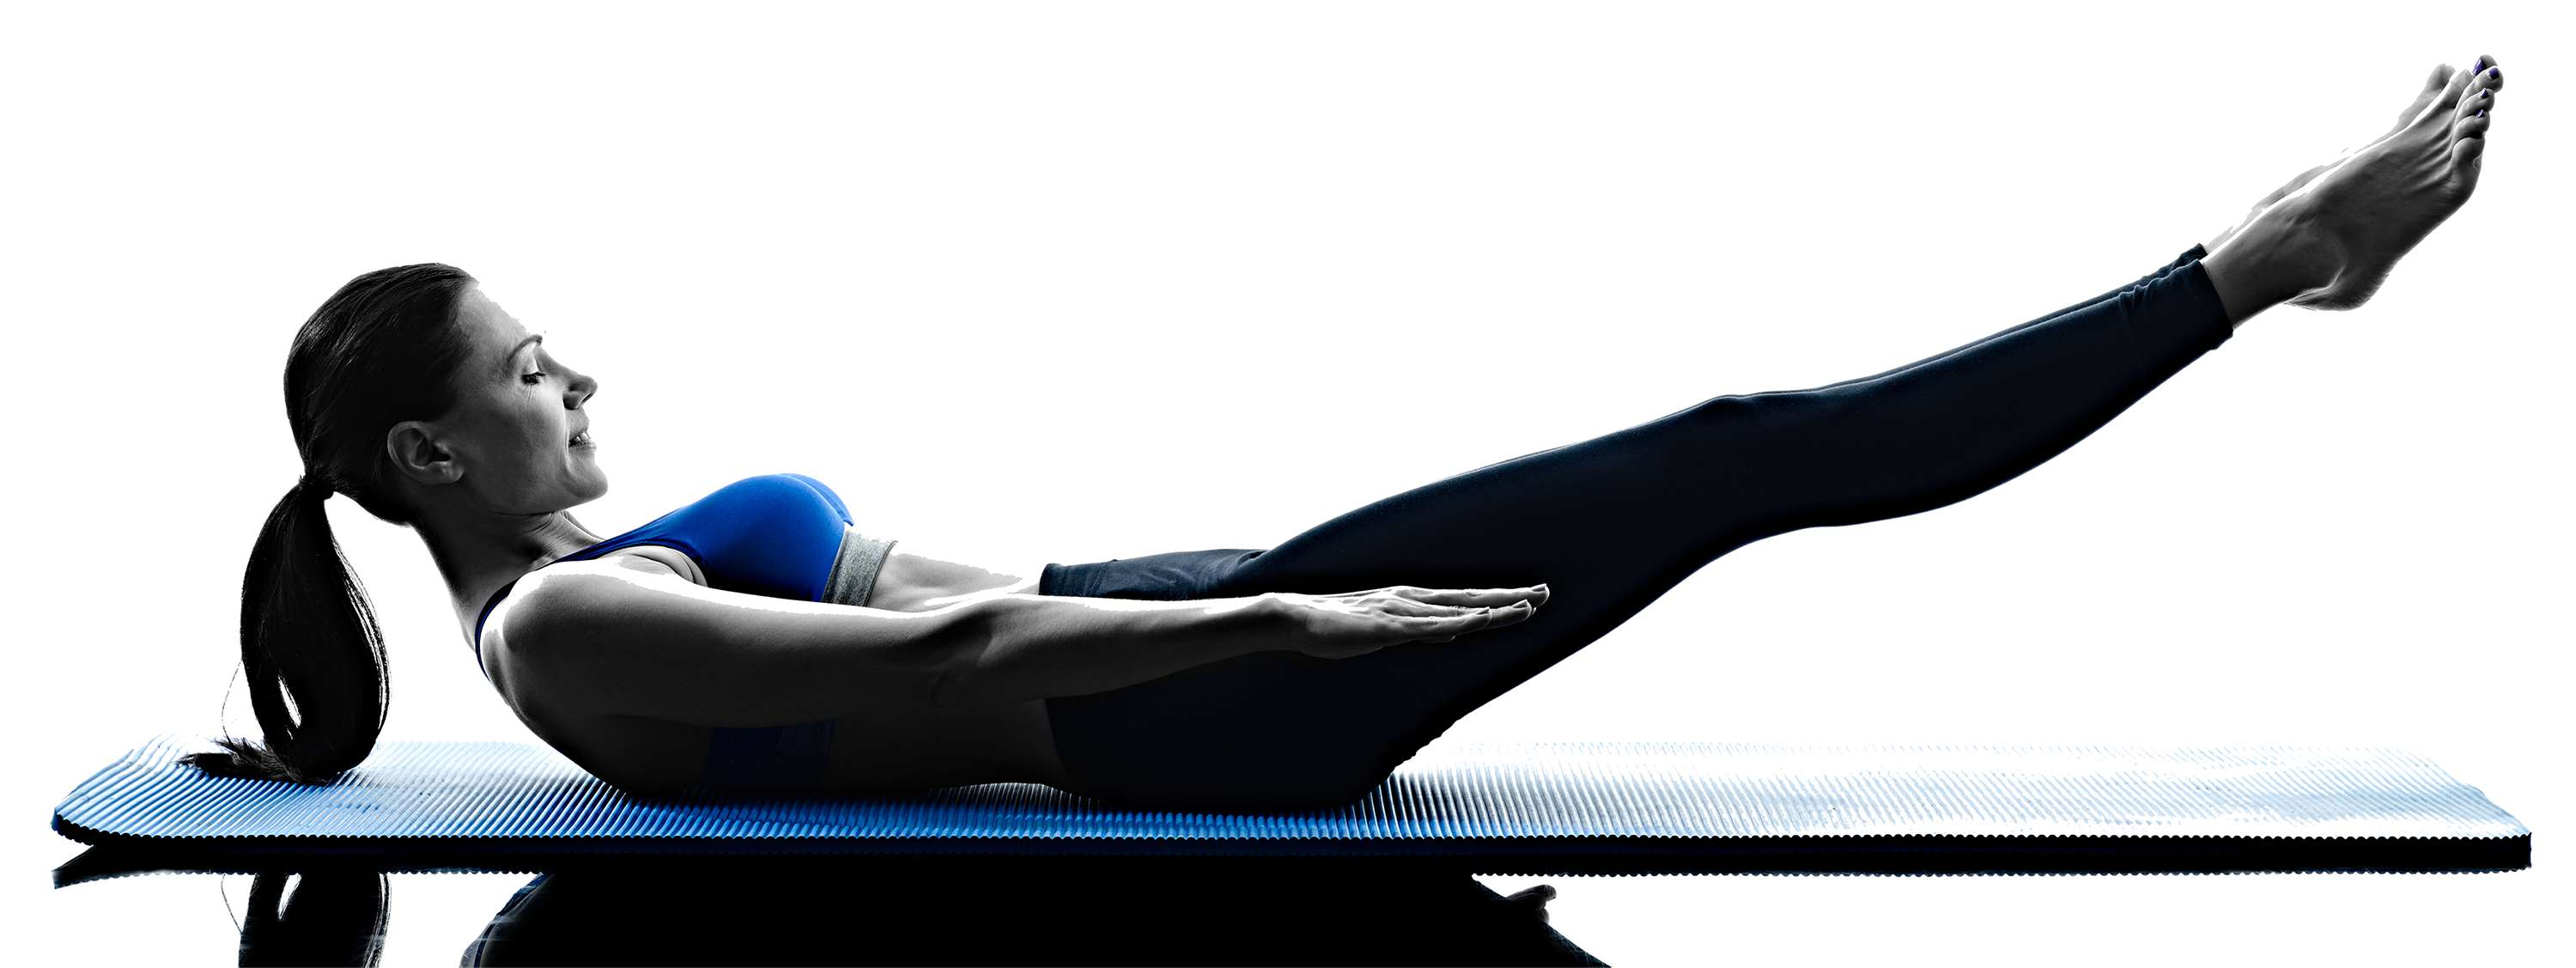 8 principes Fondamentaux en Pilates